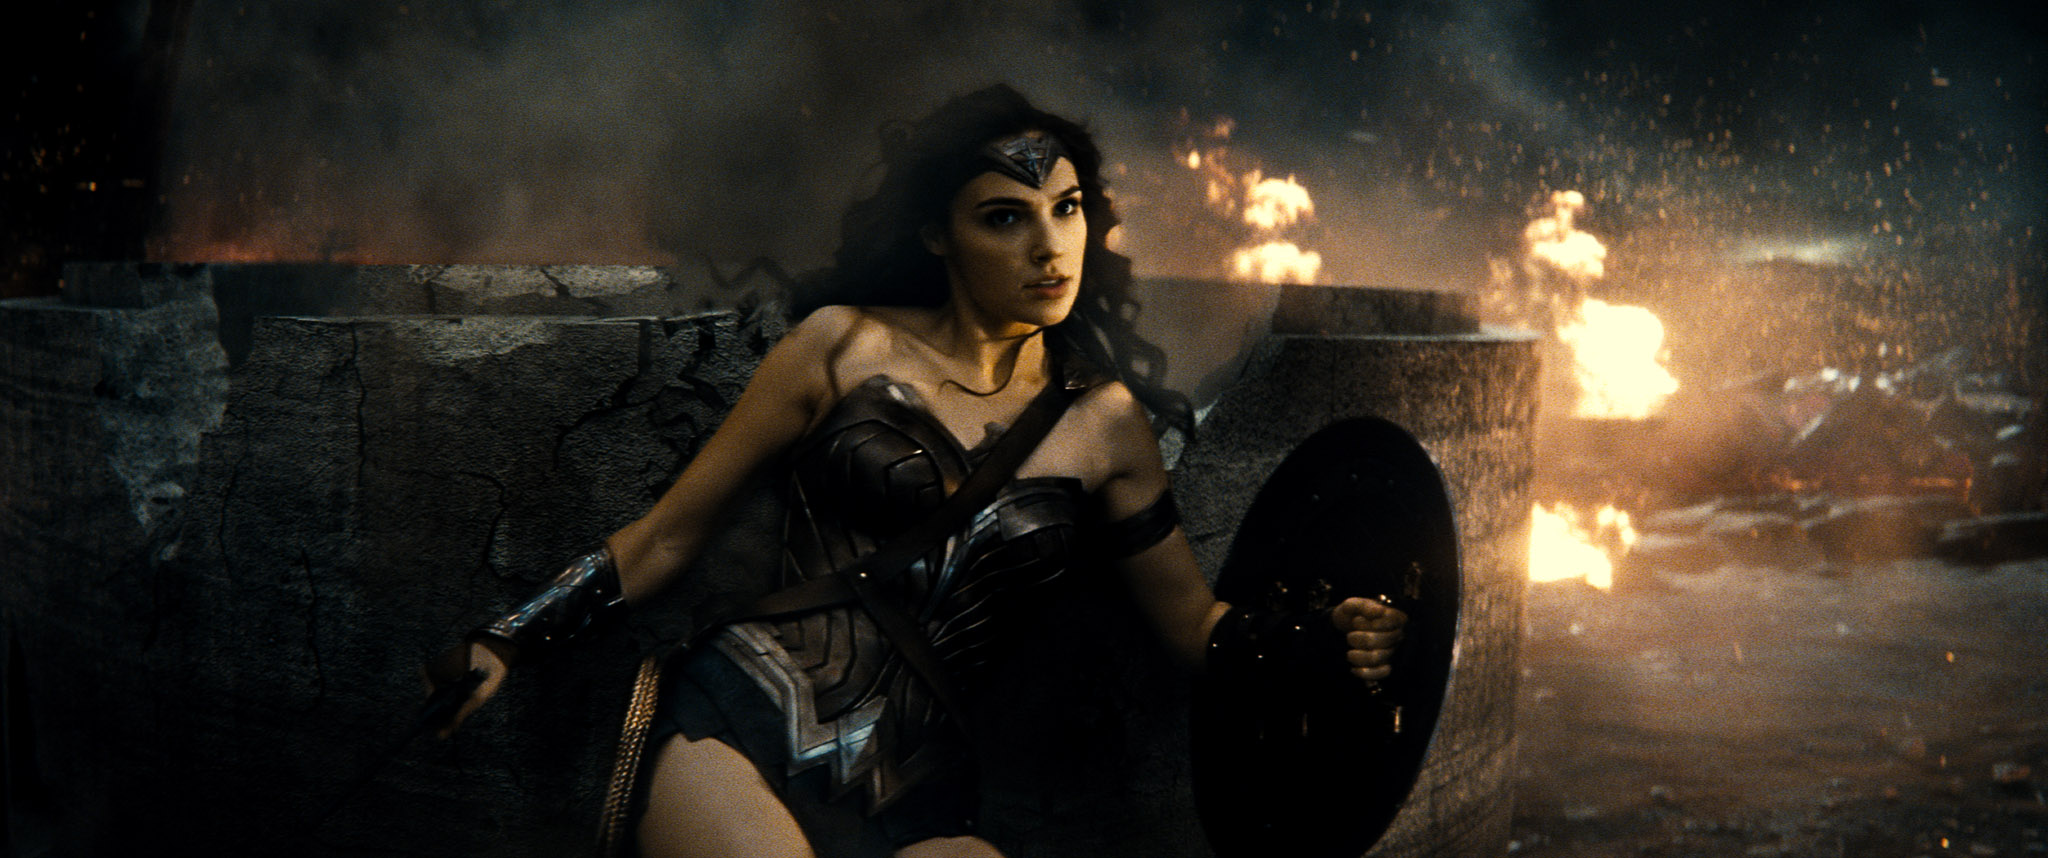 batman-v-superman-dawn-of-justice-gal-gadot-wonder-woman.jpg